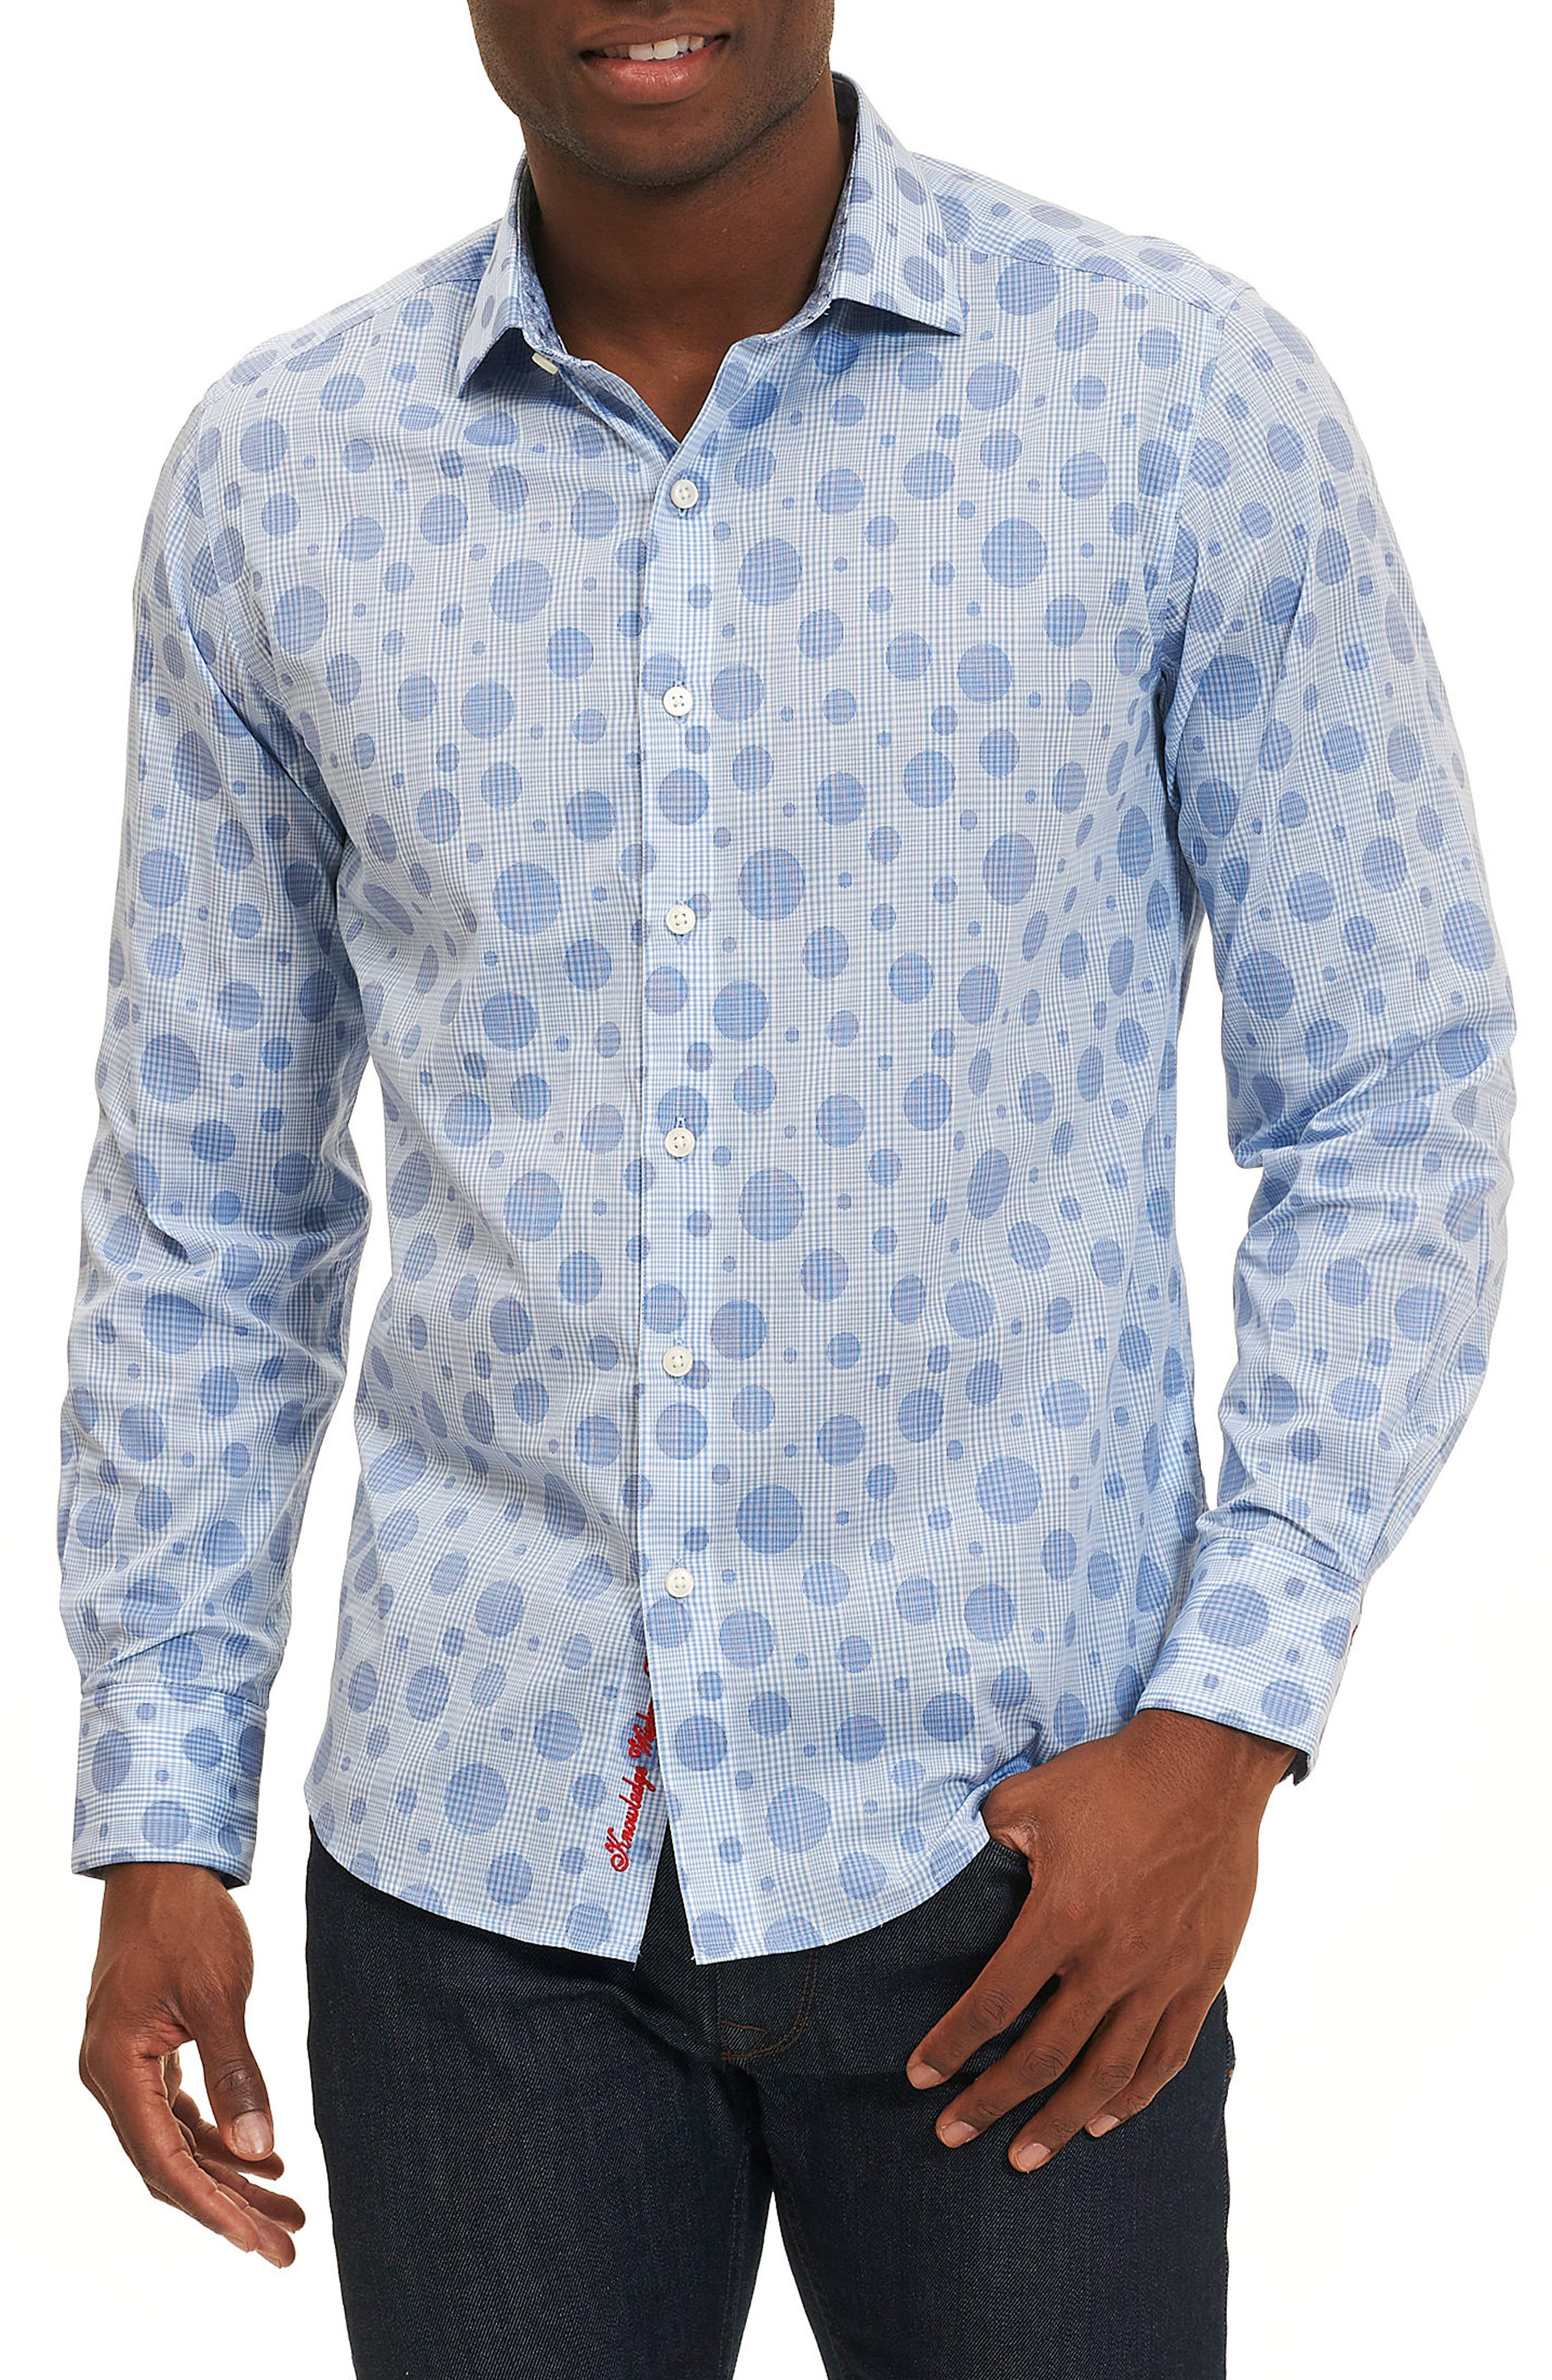 Phillip Print Sport Shirt,                             Main thumbnail 1, color,                             400